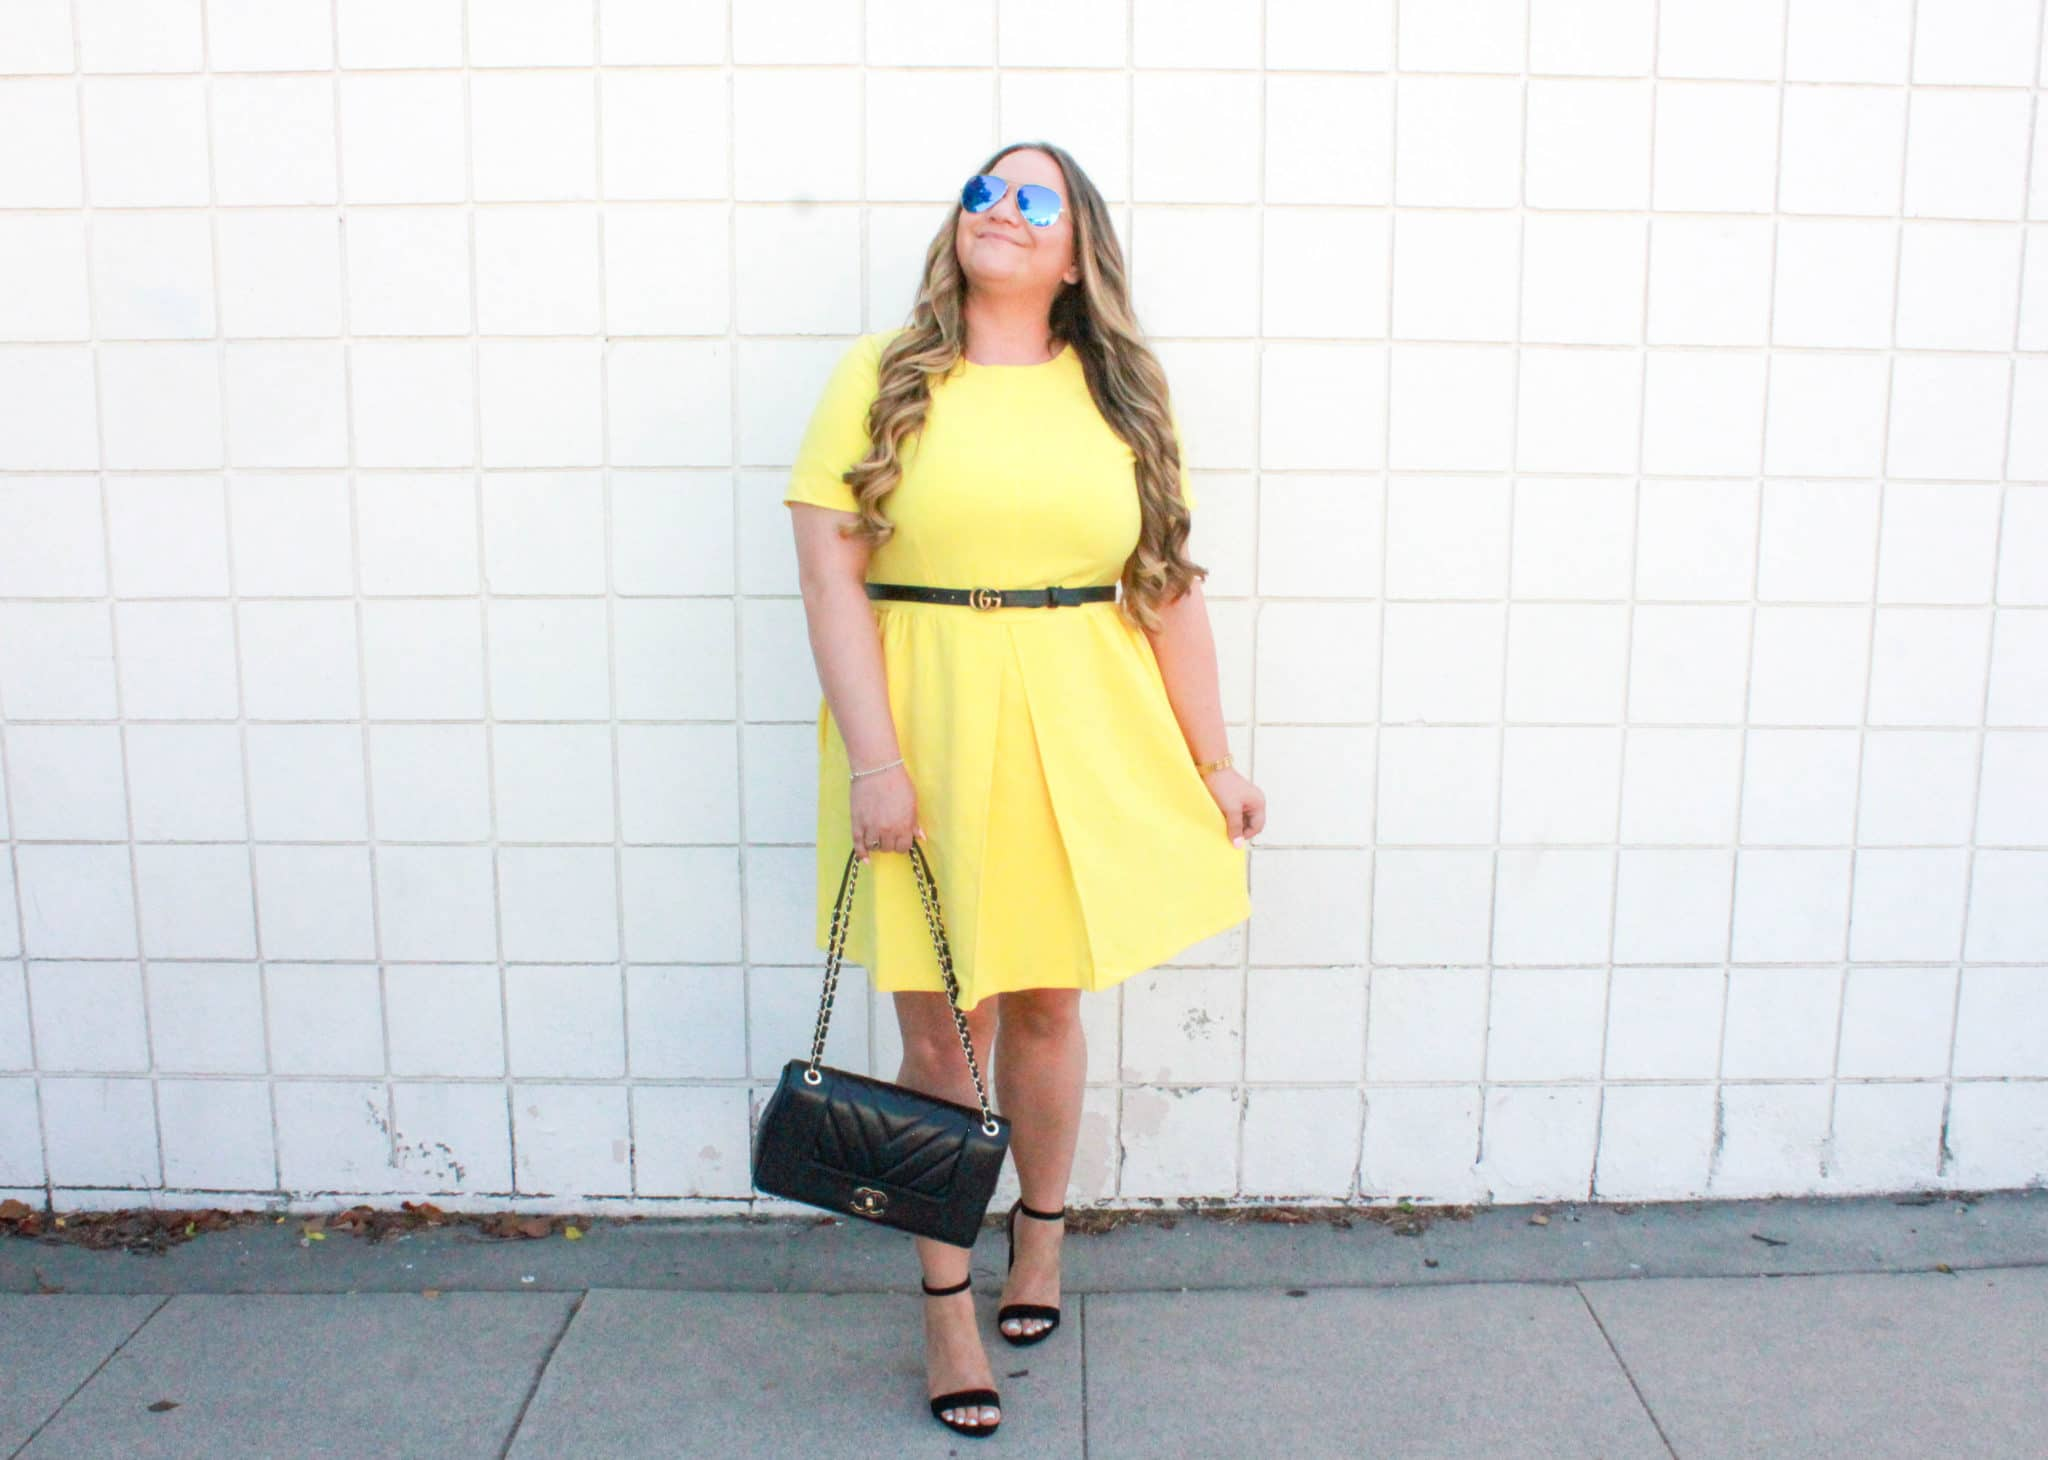 missyonmadison, missyonmadison blog, missyonmadison instagram, la blogger, fashion blogger, fashion blog, style inspo, currently wearing, melissa tierney, hairdreams extensions, hair extensions, hair extensions, balayage hair, ombre hair, black ankle strap heels, steve madden ankle strap heels, black heeled block sandals, chanel flap bag, black chanel flap bag, raybans, simply be, simply be usa, simply be yellow dress, yellow a line dress, gucci belt, thin gucci belt, summer style, fall style, blogger trends, how to style yellow, bumble bee vibes,